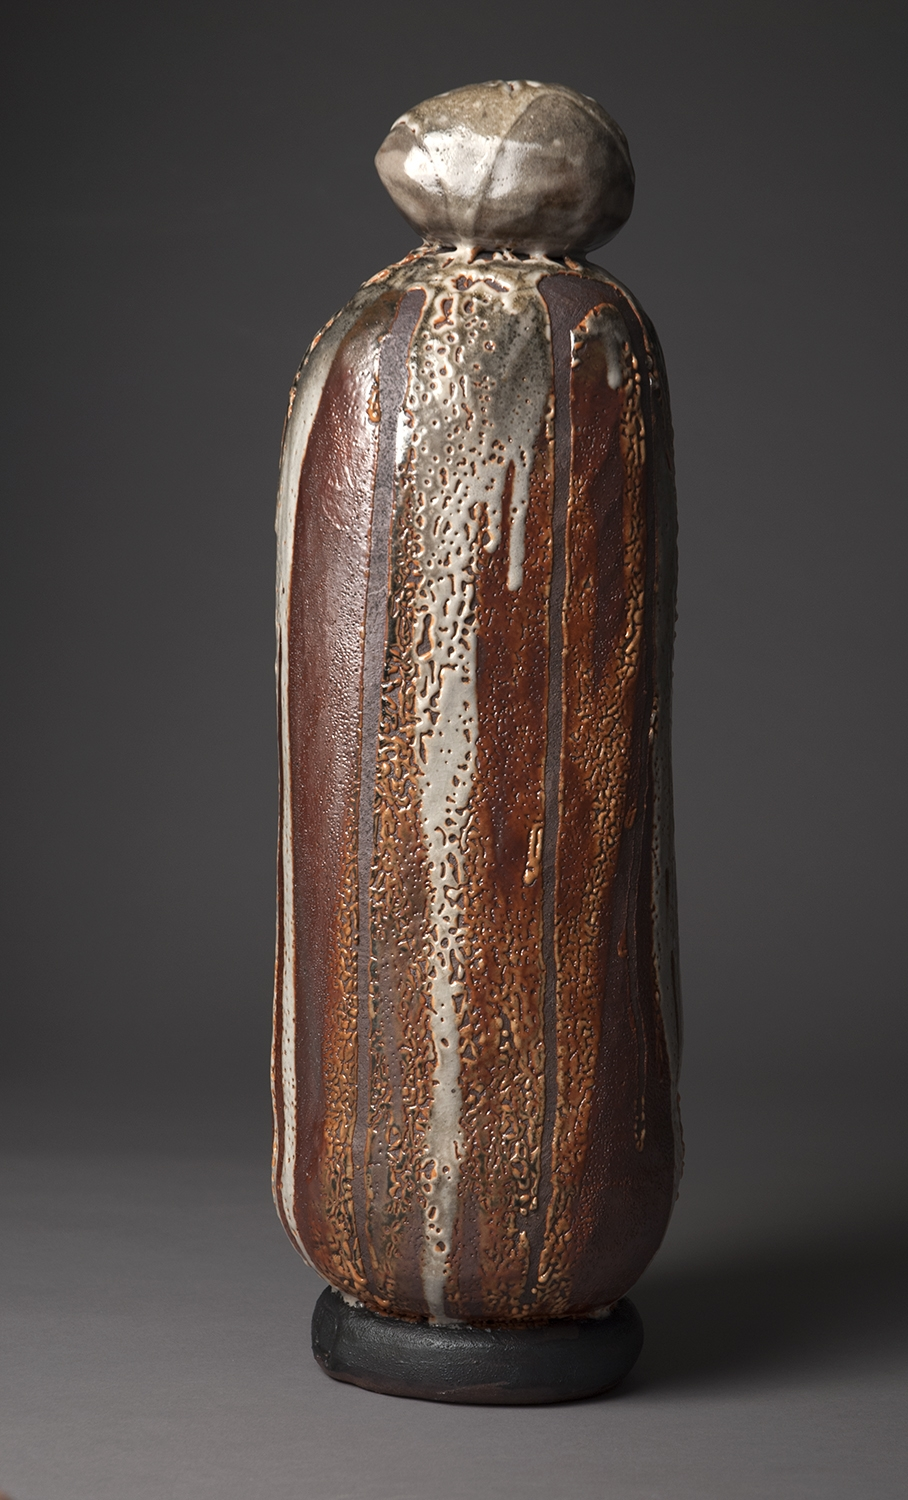 Stele #1, 2017, 23x8x8 inches, clay and glaze